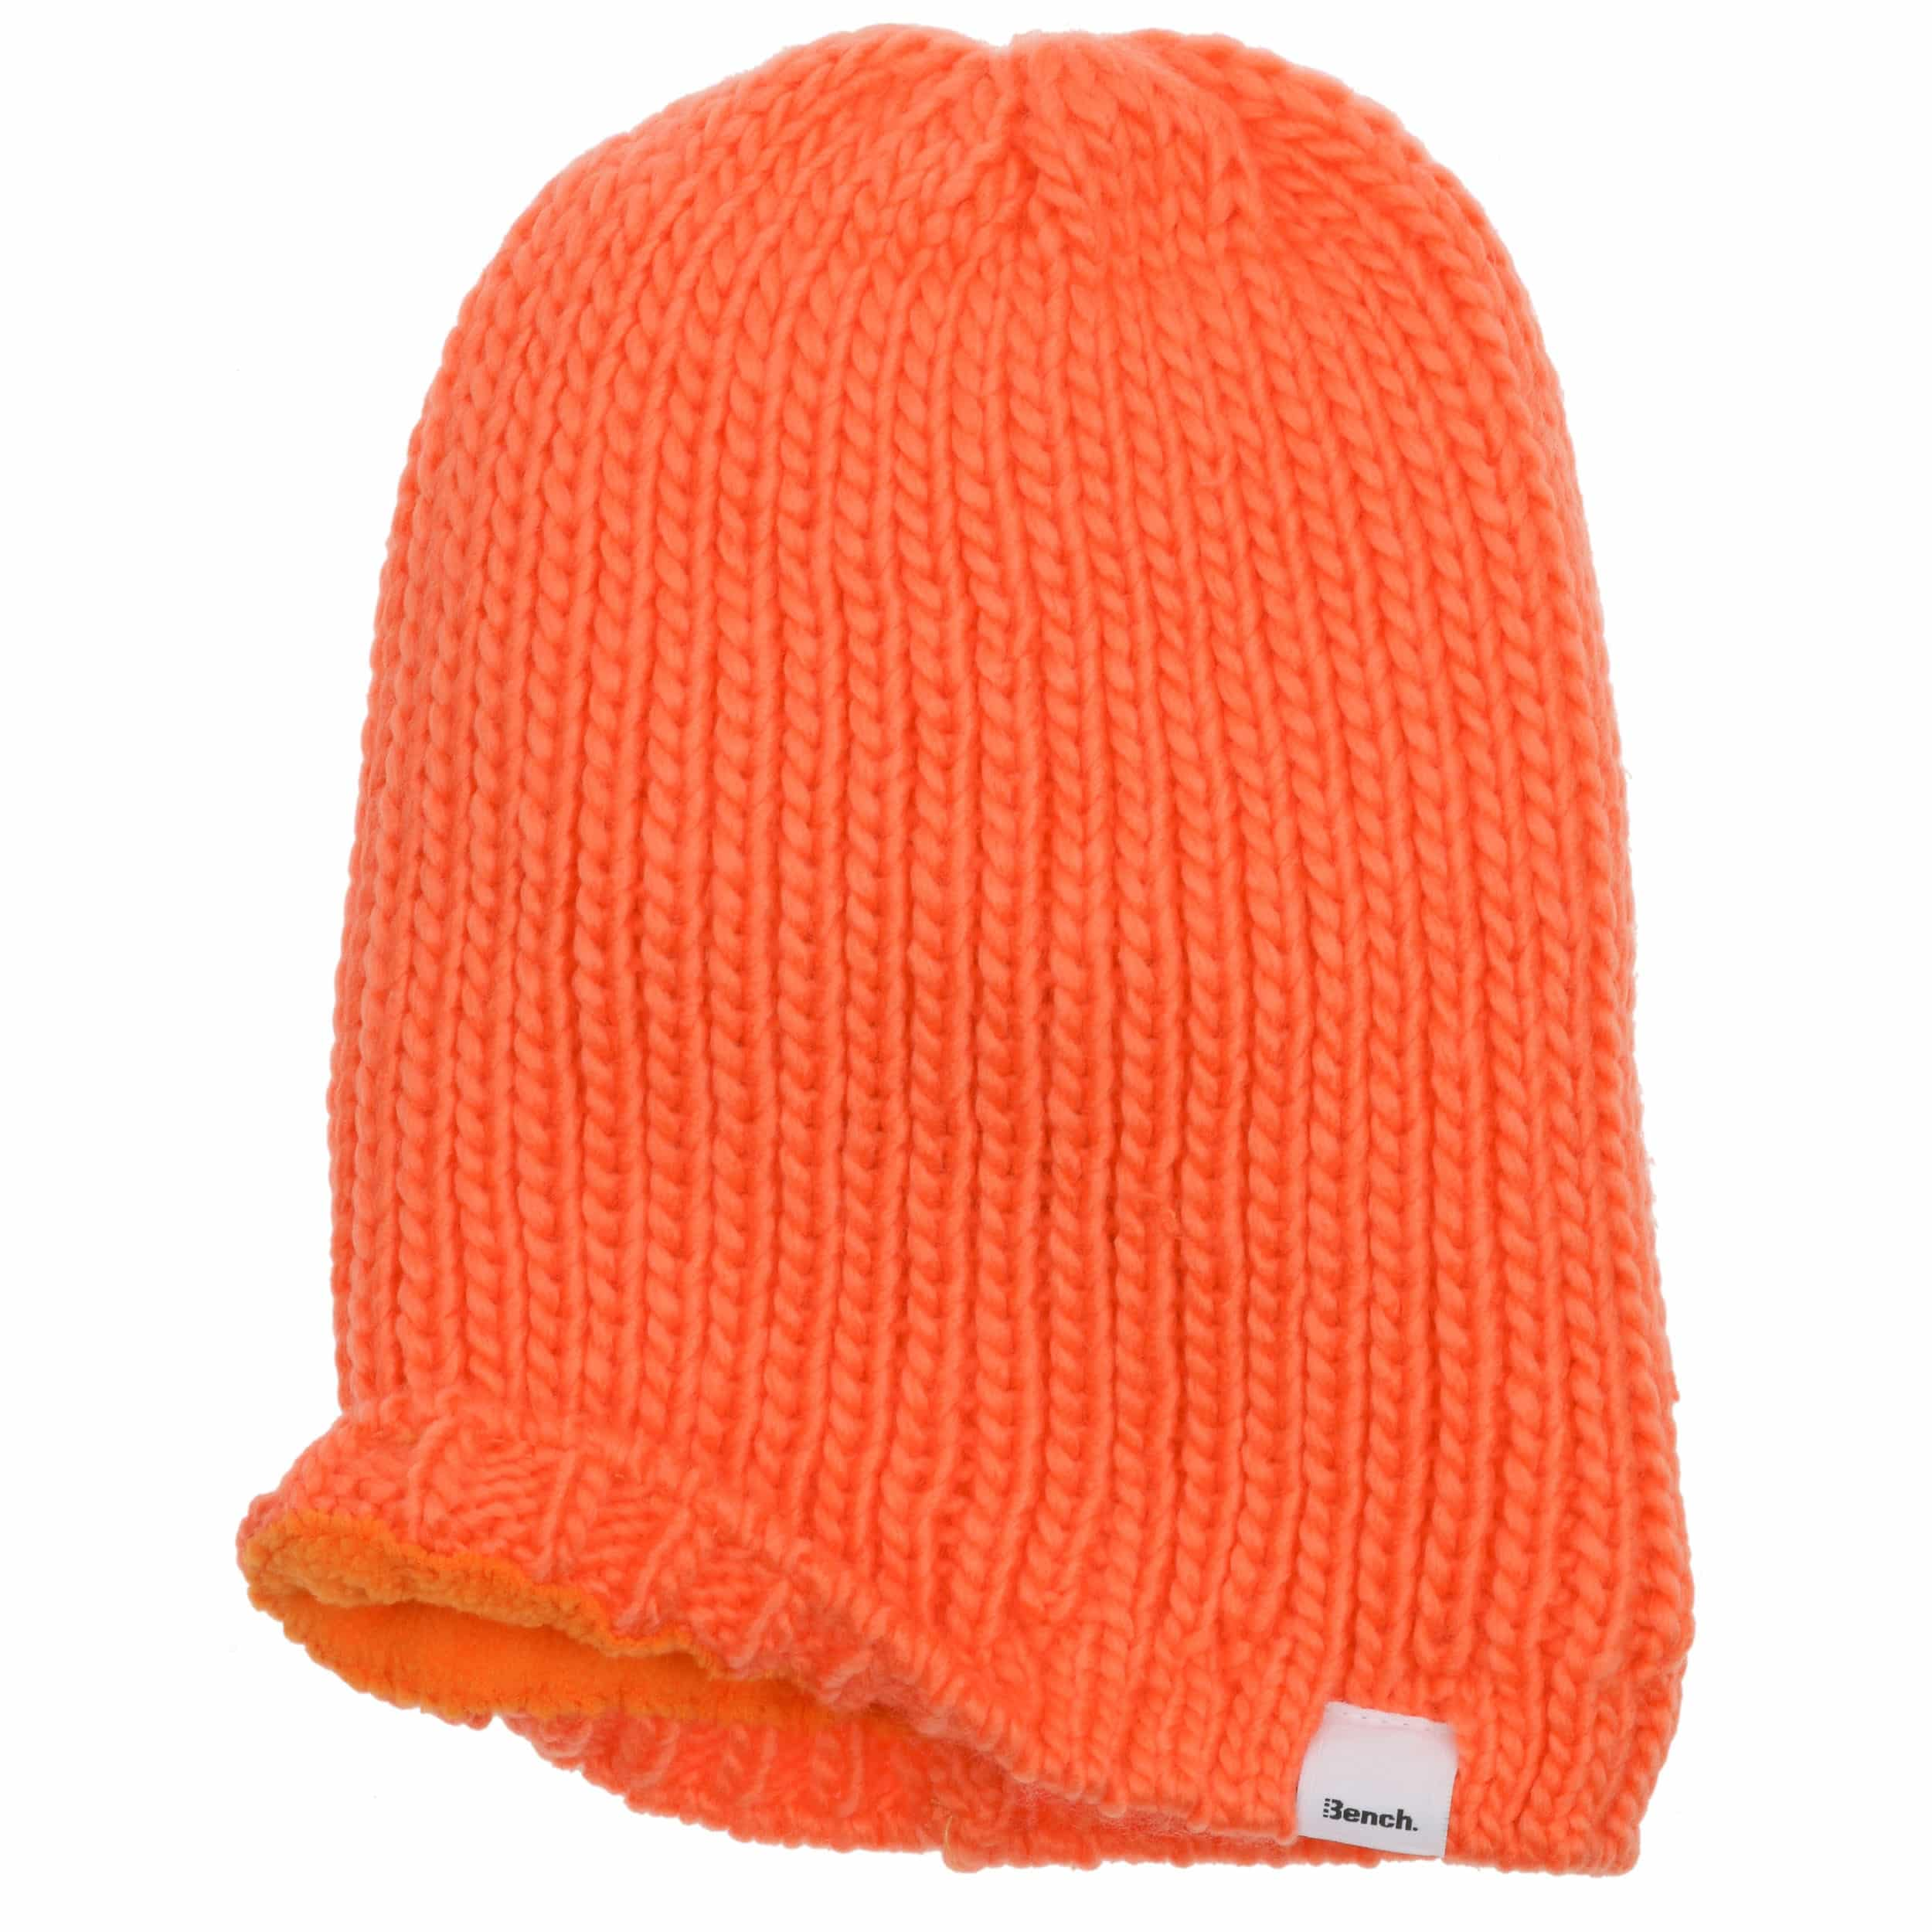 102daf6d660 ... Long Beanie Knit Hat by Bench - orange 1 ...